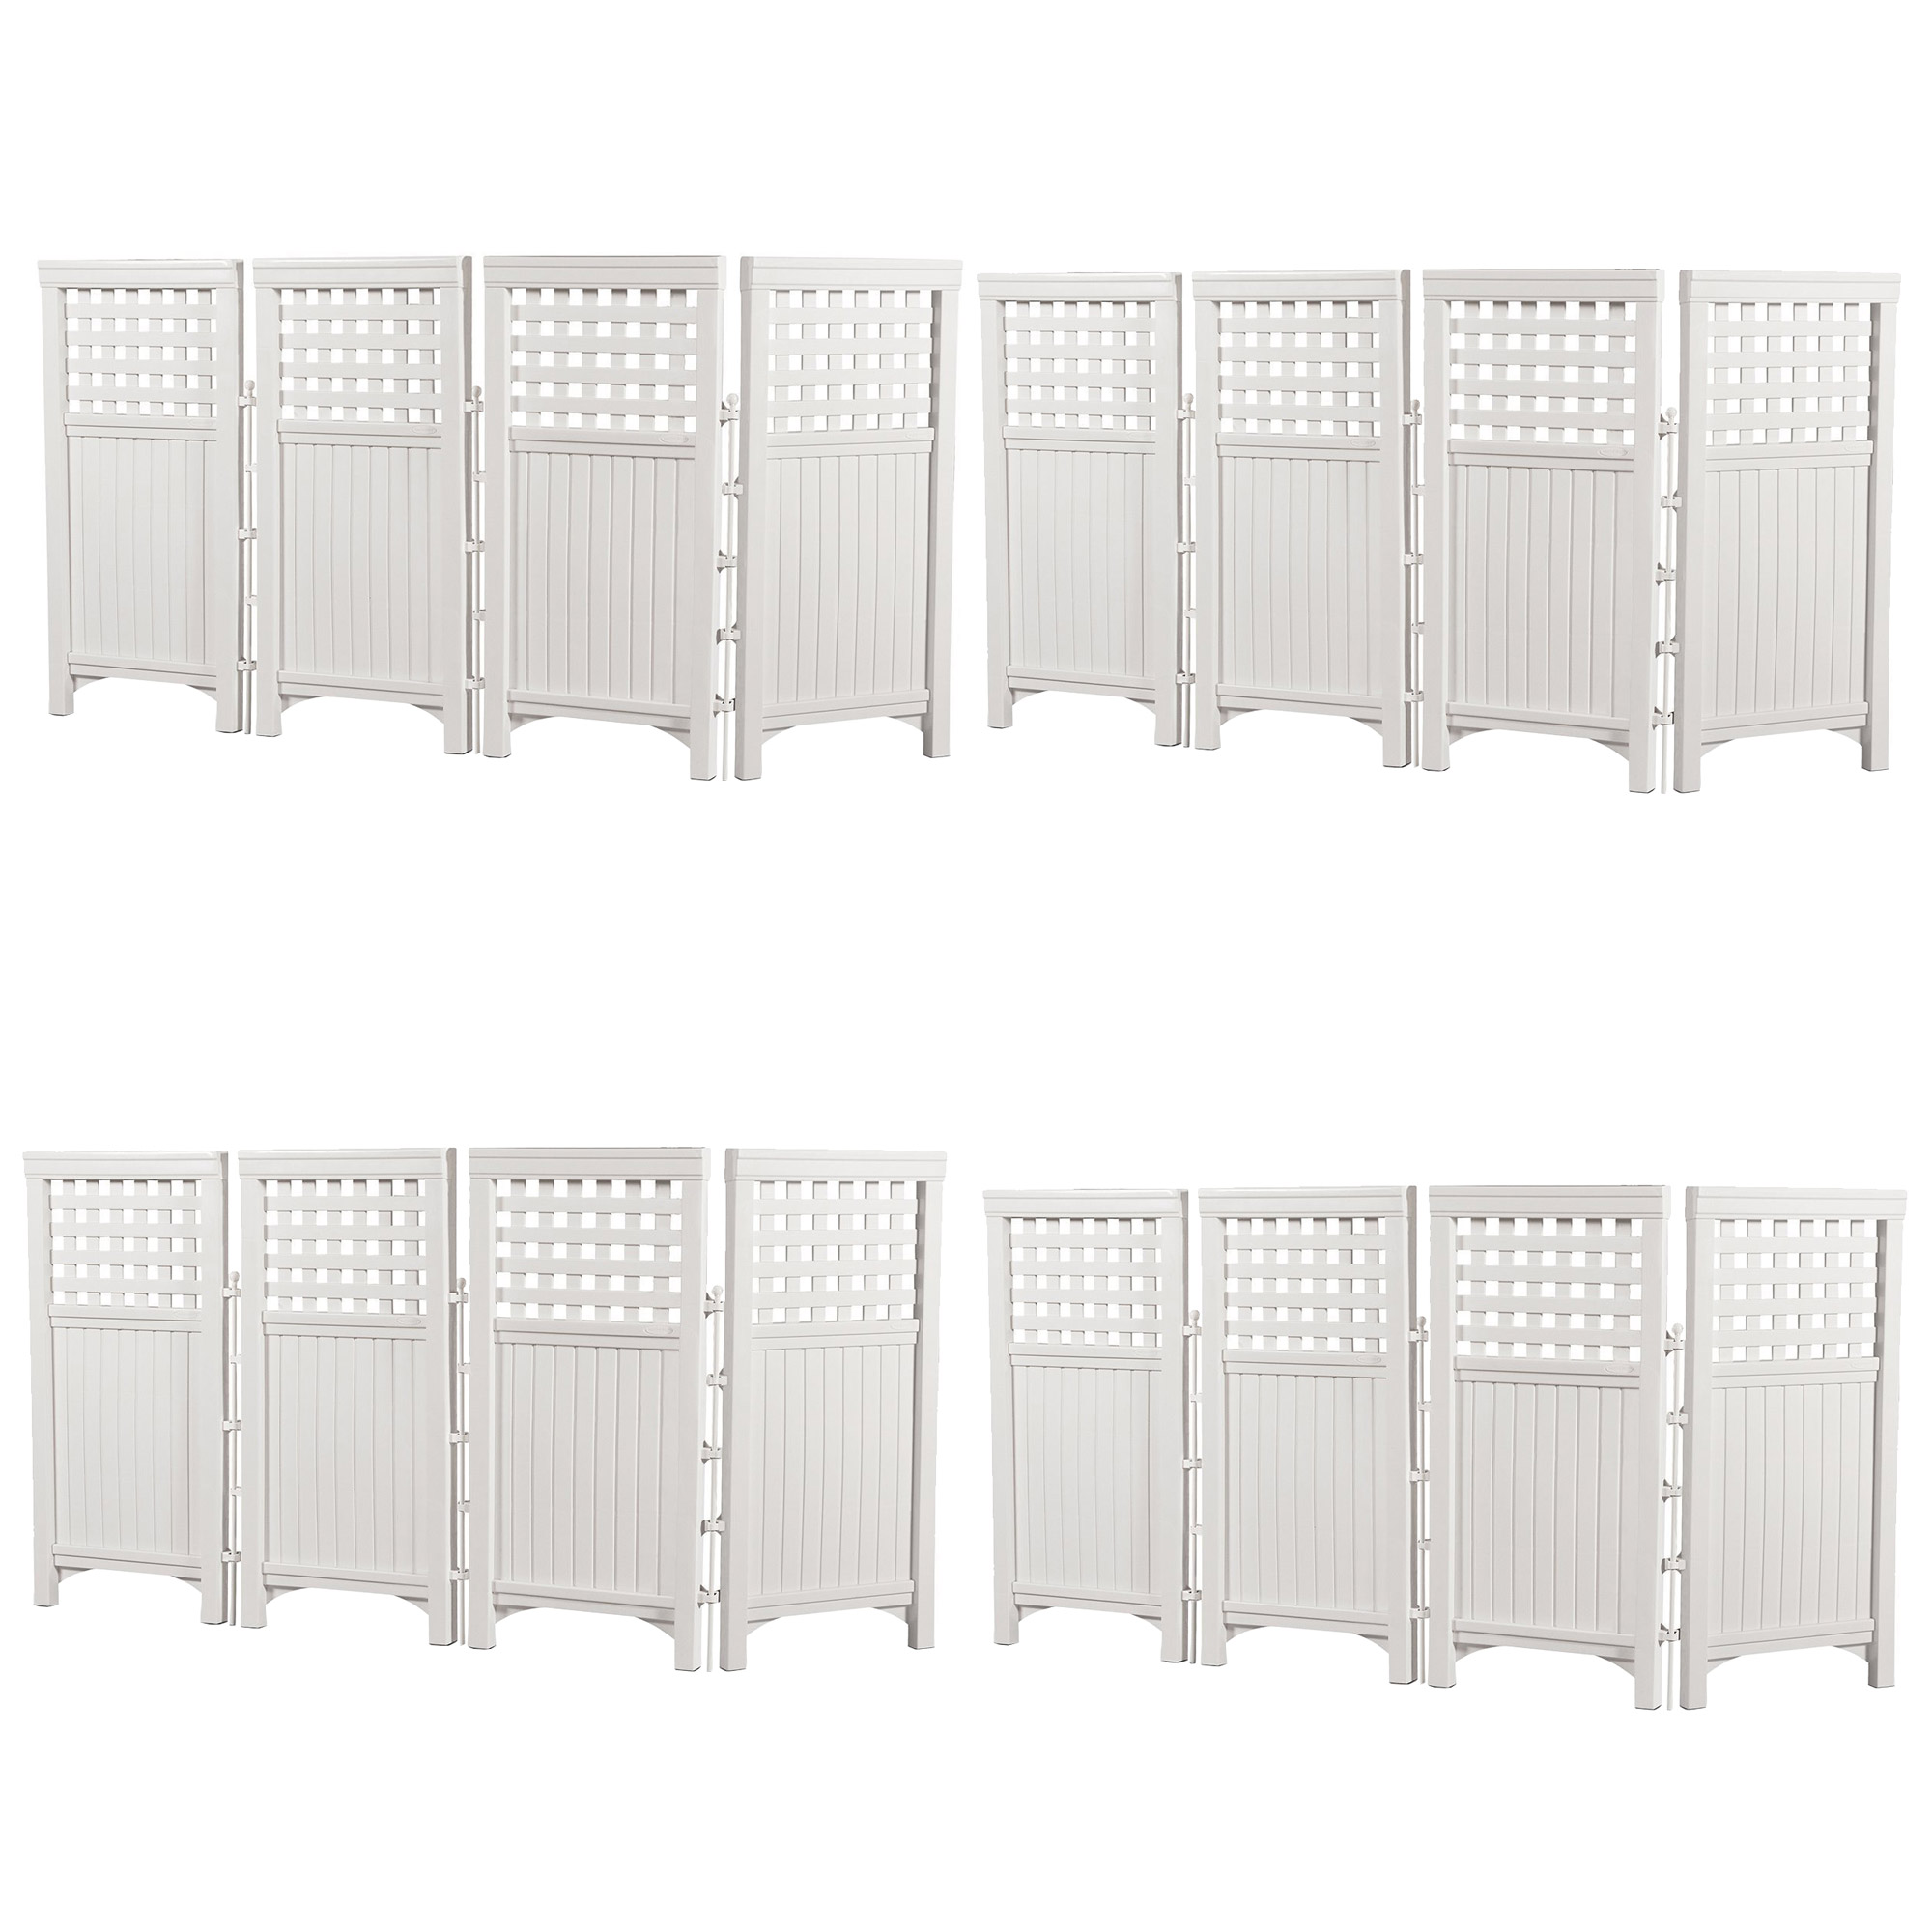 Suncast Outdoor Garden Yard 4 Panel Screen Enclosure Gated Fence, White (4 Pack) by Suncast